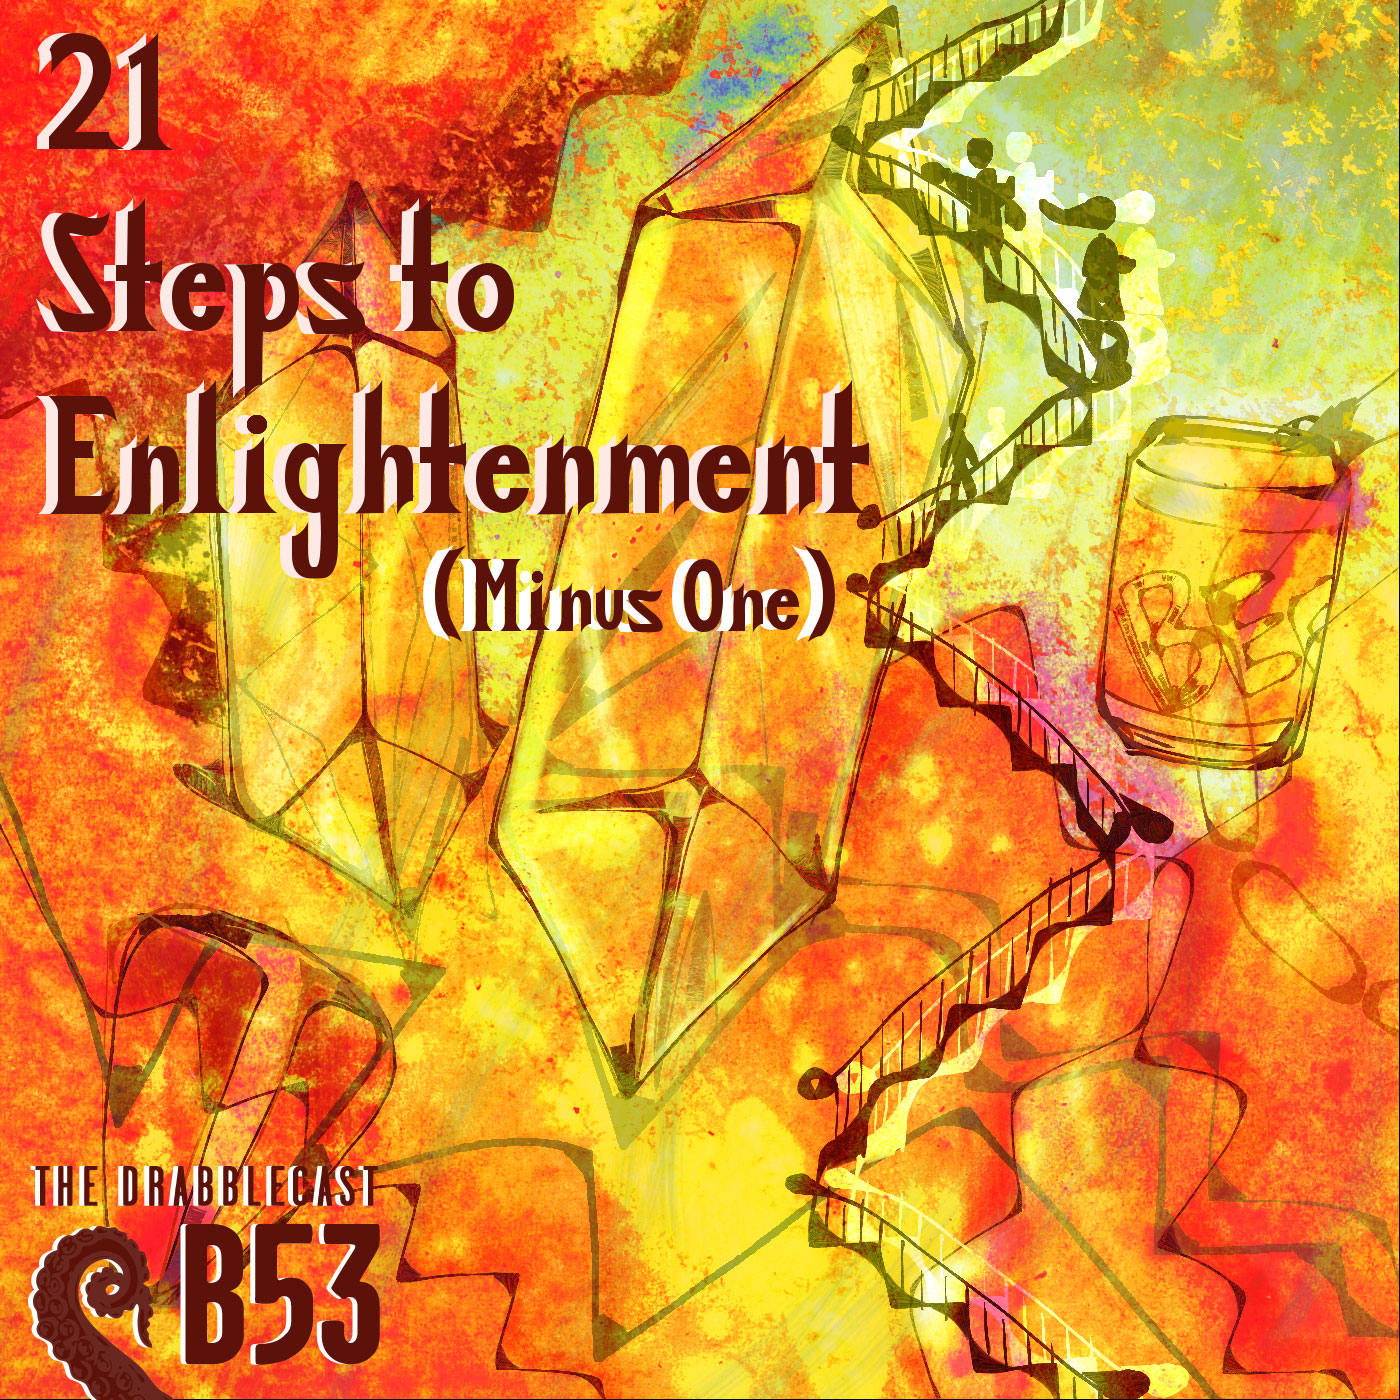 Cover for Drabblecast B-Sides 53, 21 Steps to Enlightenment (Minus 1), by Shea Bartel